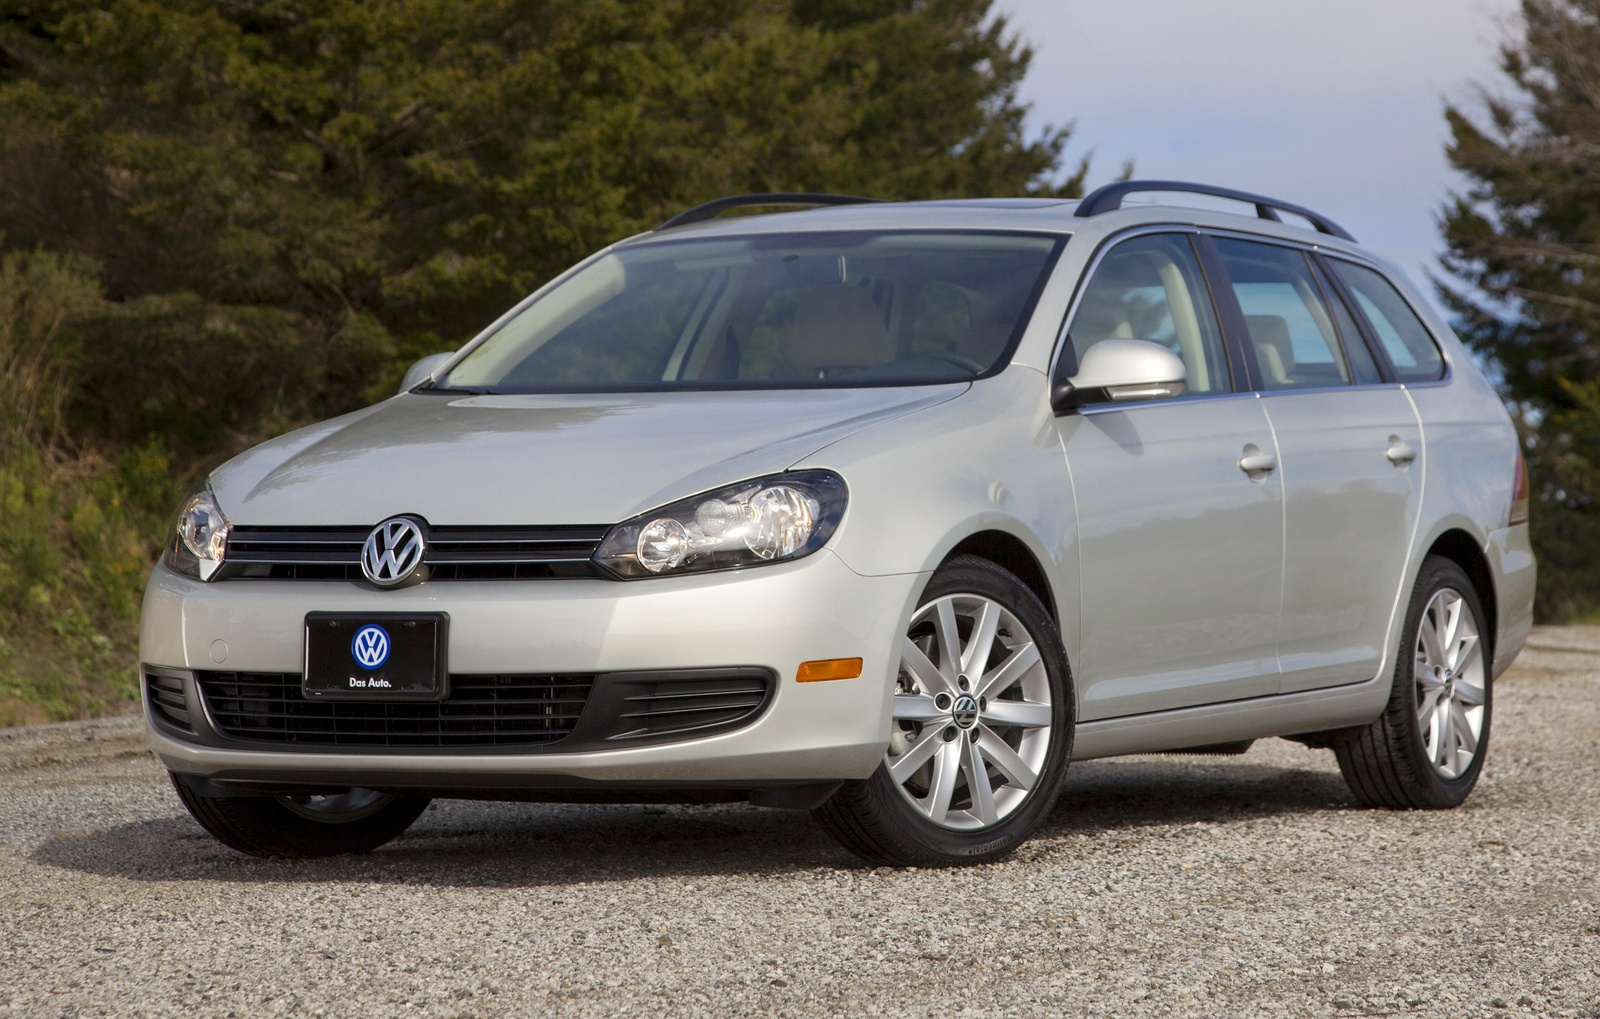 2014 volkswagen jetta sportwagen overview cargurus. Black Bedroom Furniture Sets. Home Design Ideas